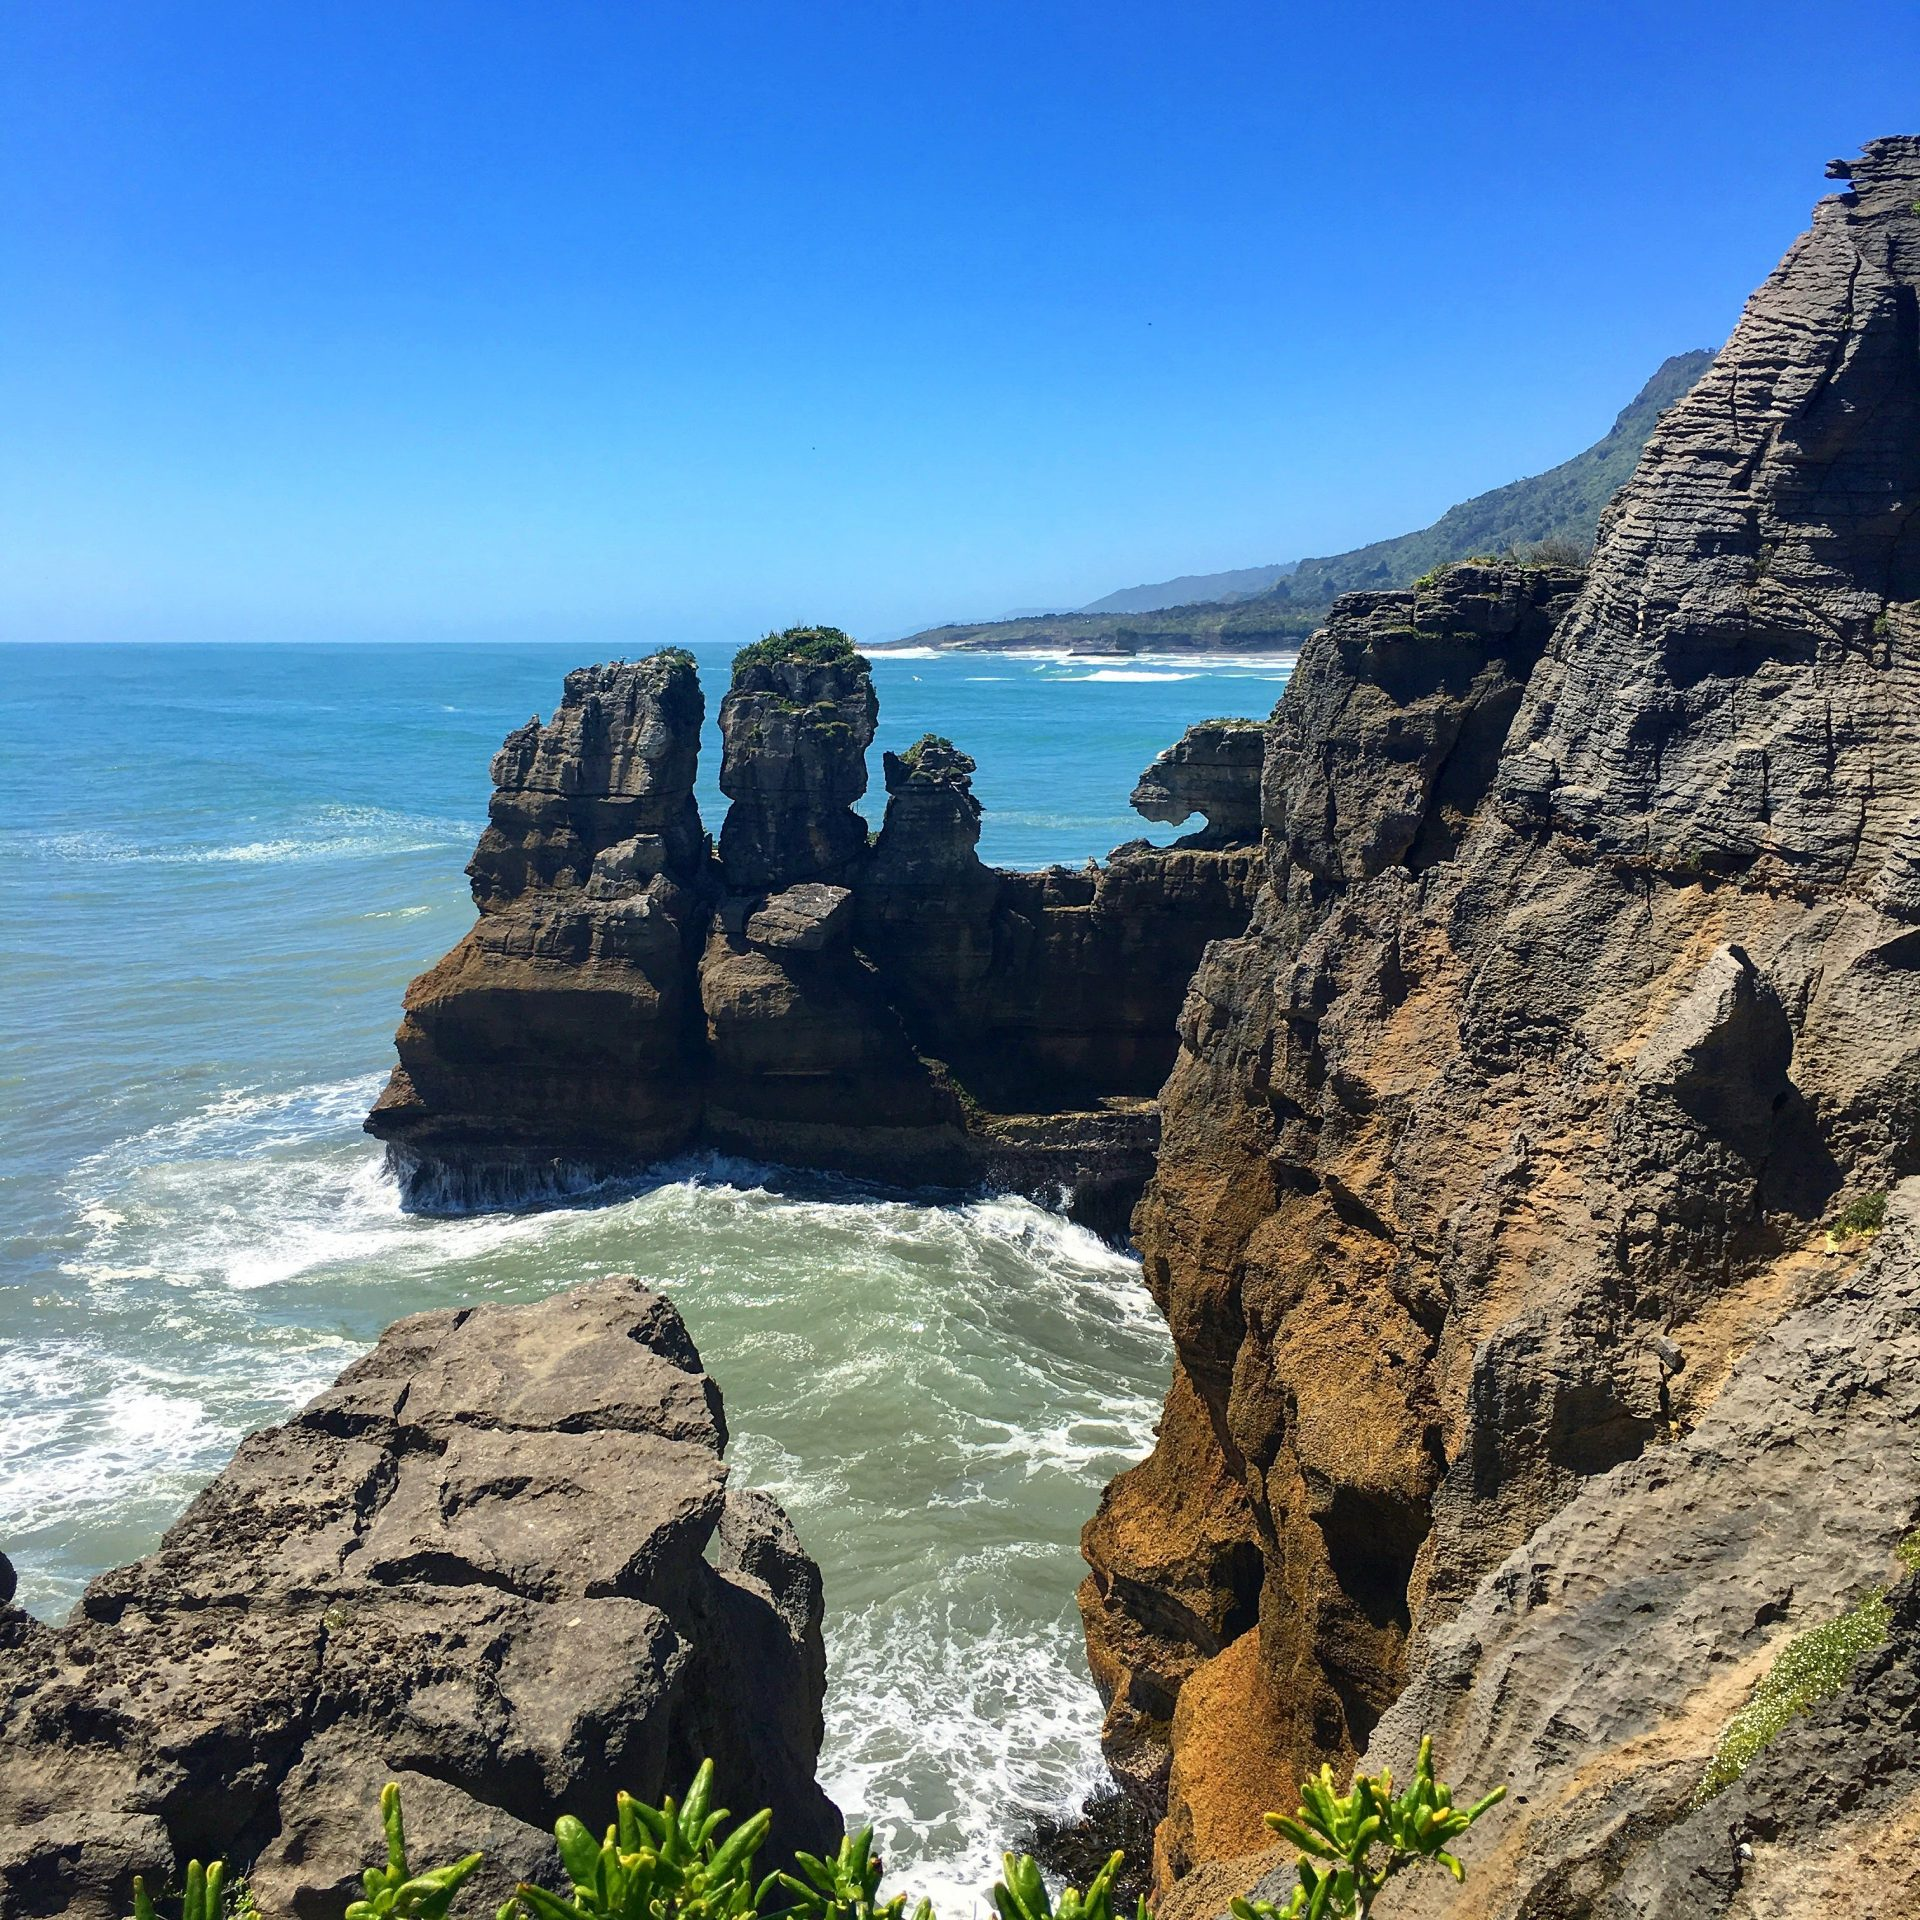 pancake rocks new zealand - Travel Contests: March 11th, 2020 - New Zealand, Anguilla, Jamaica, & more